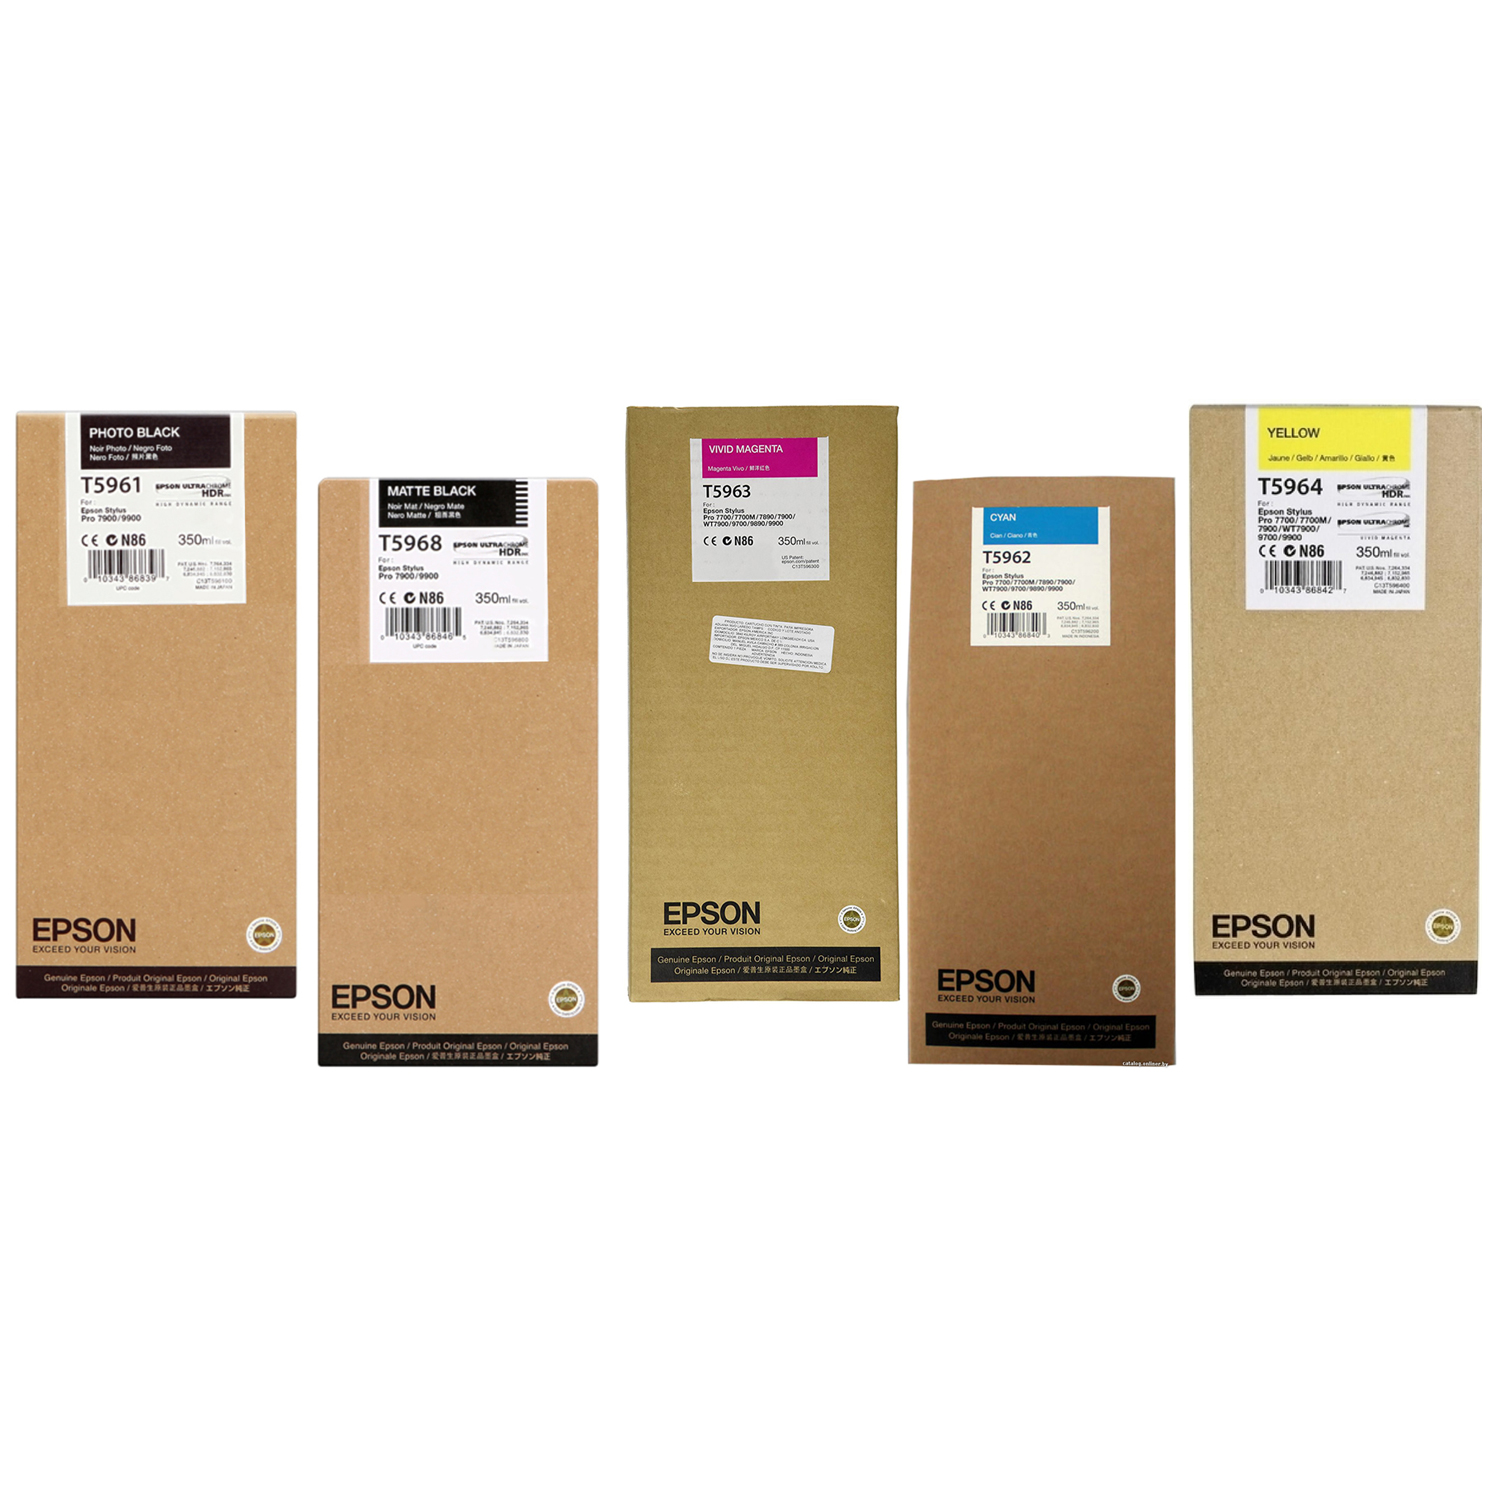 Original Epson T596 C, M, Y, PBK, MBK Multipack Ink Cartridges (T5961 / T5968 / T5962 / T5963 / T5964)